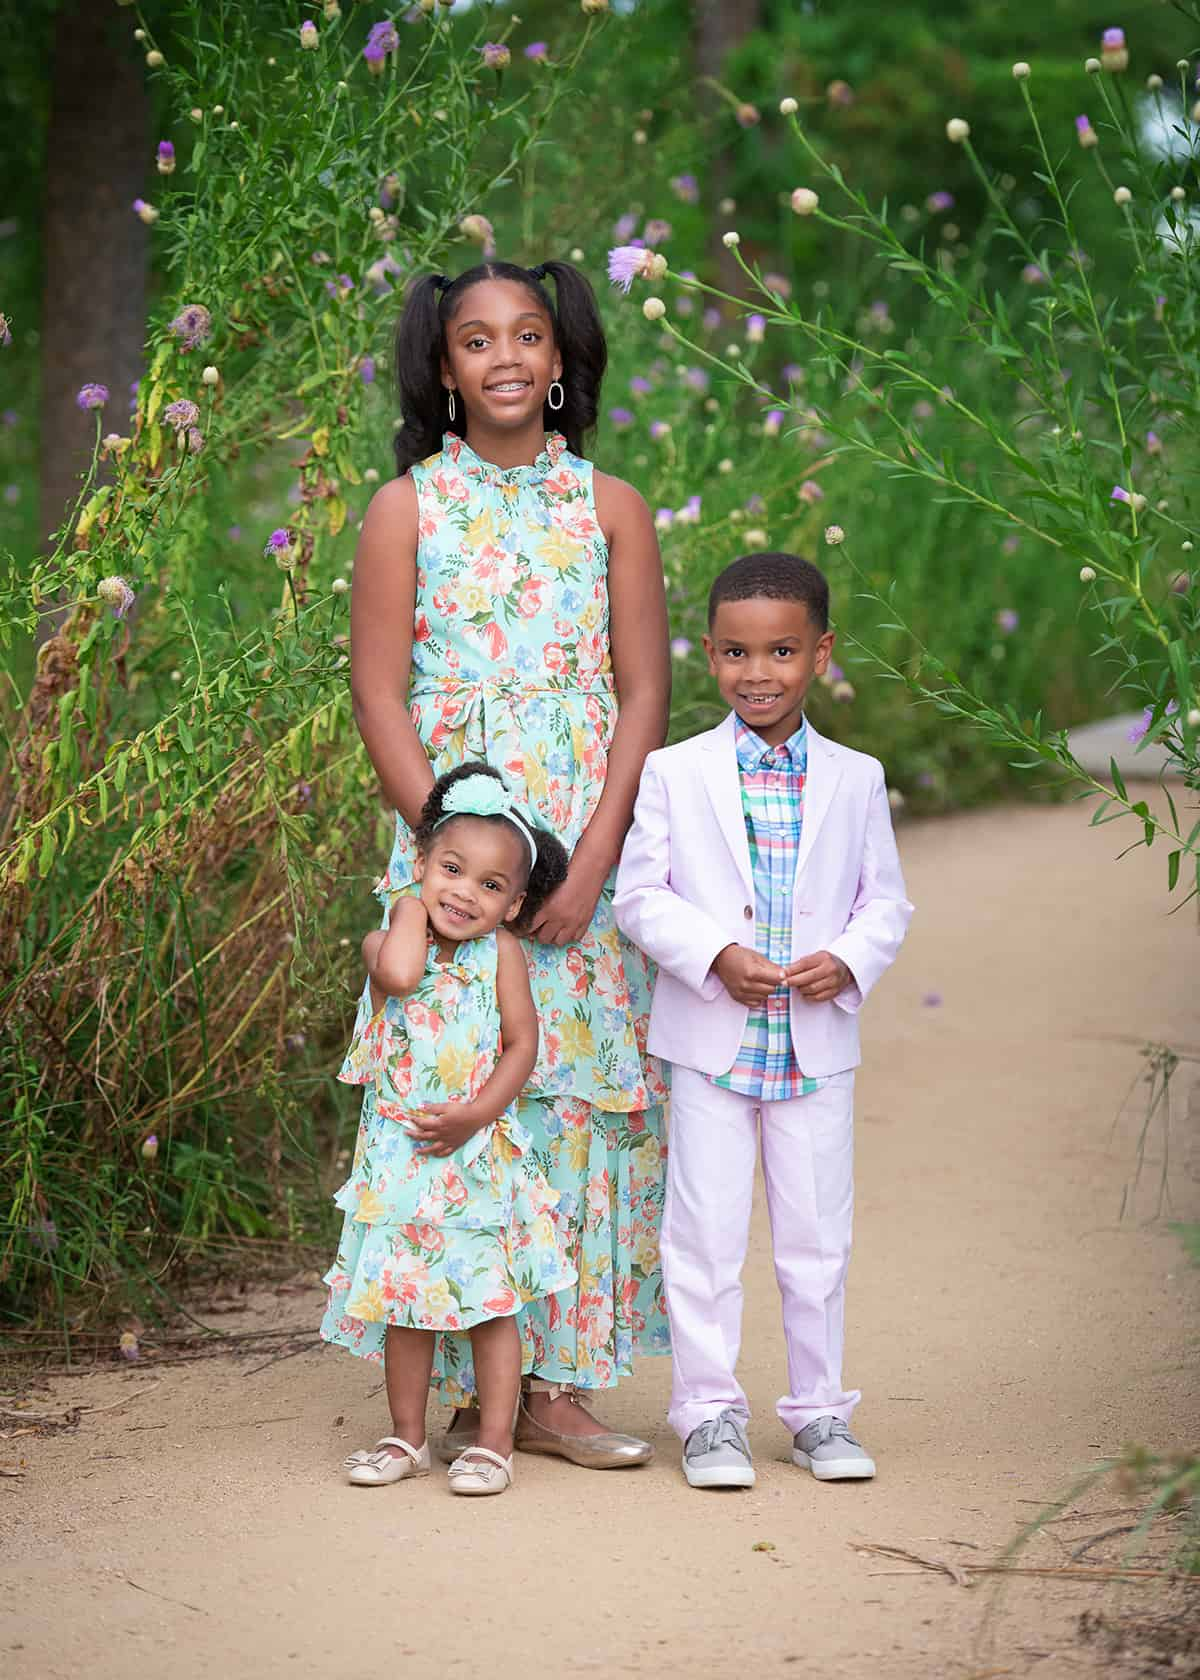 Children in the spring at the Houston Arboretum for photoshoot